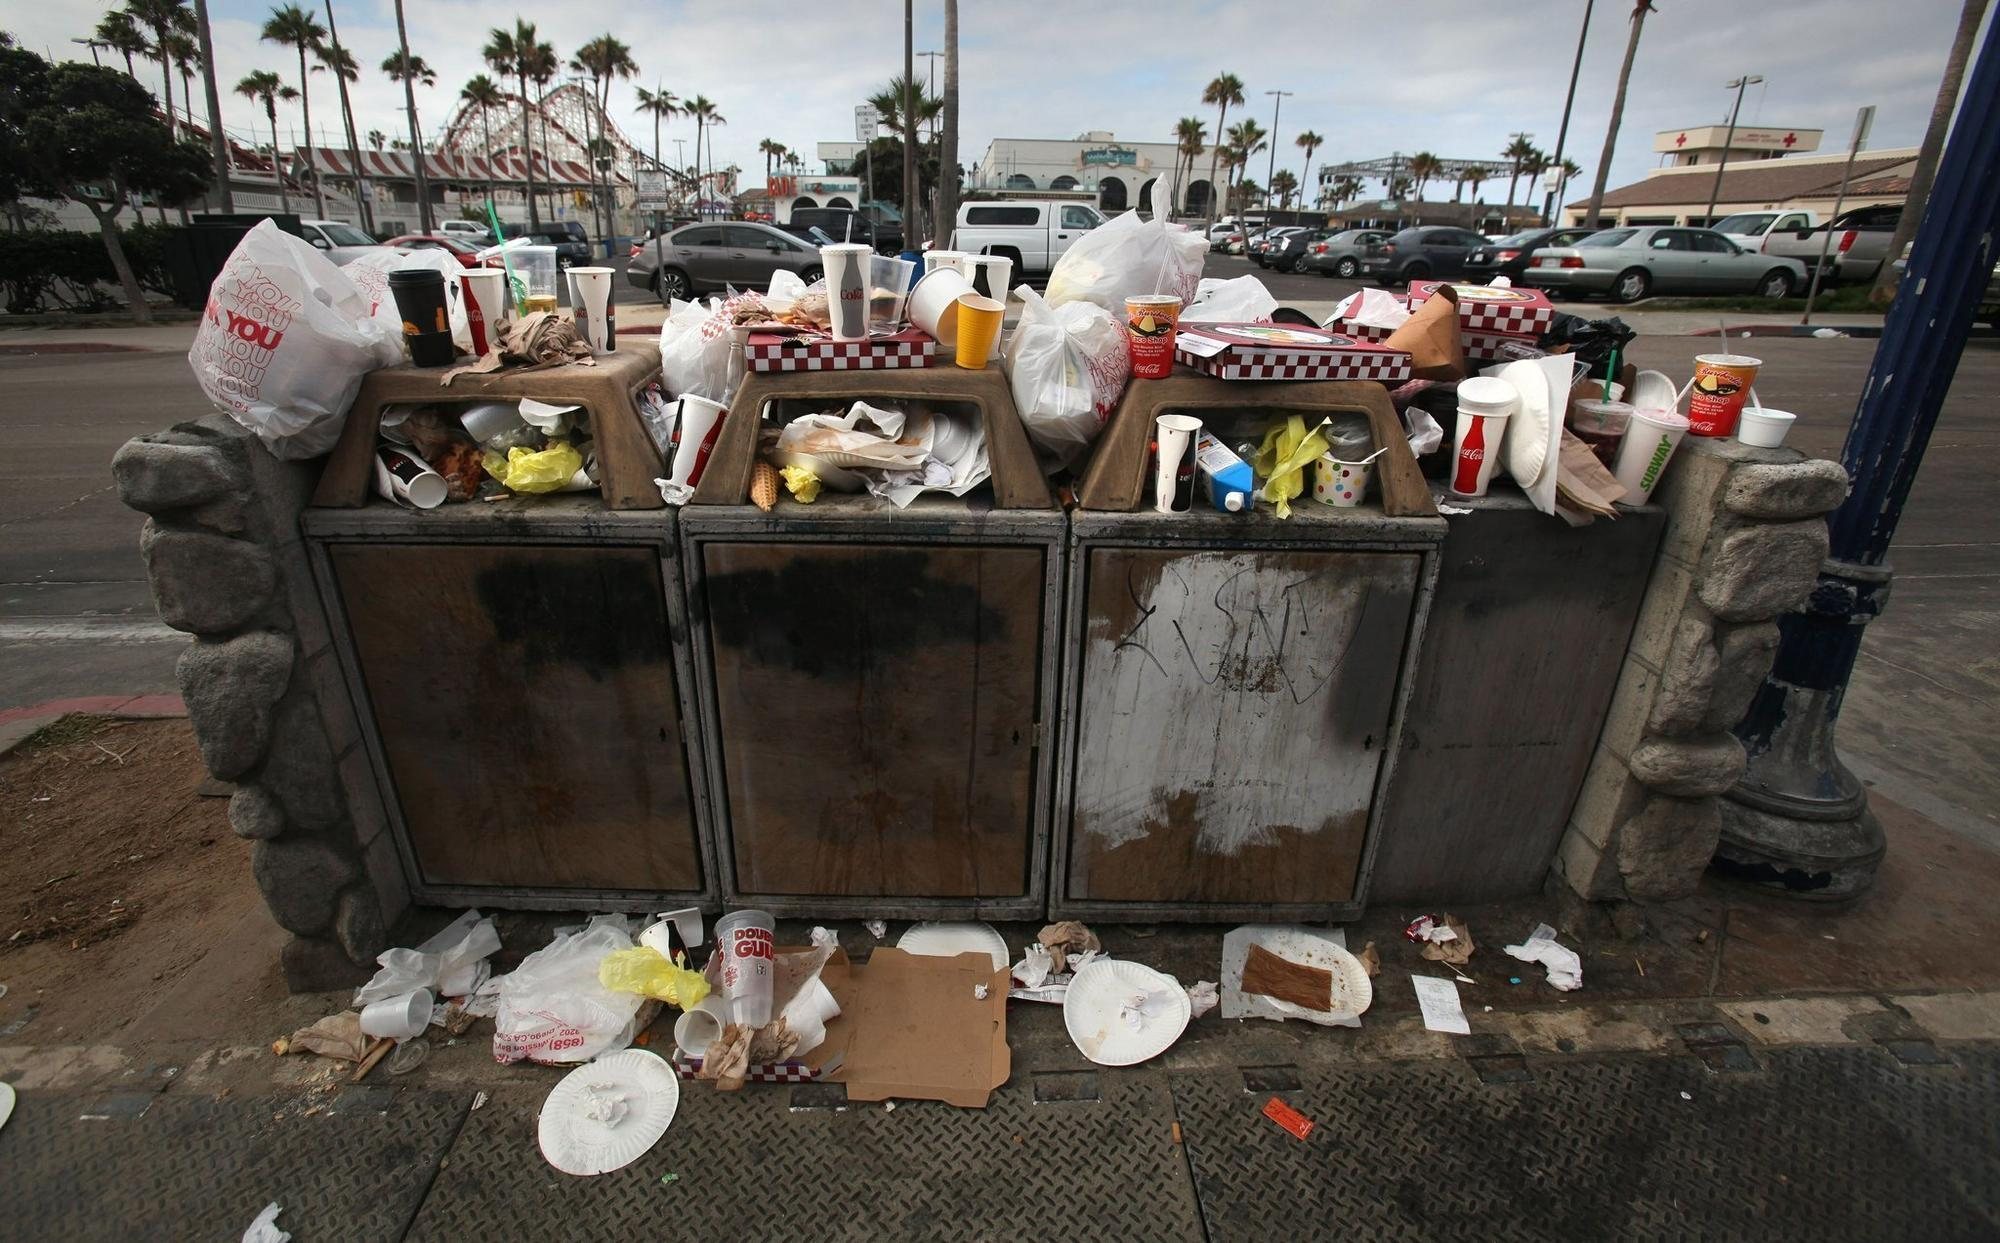 San diego expanding clean up campaign focused on illegal for Mattress cleaning service san diego